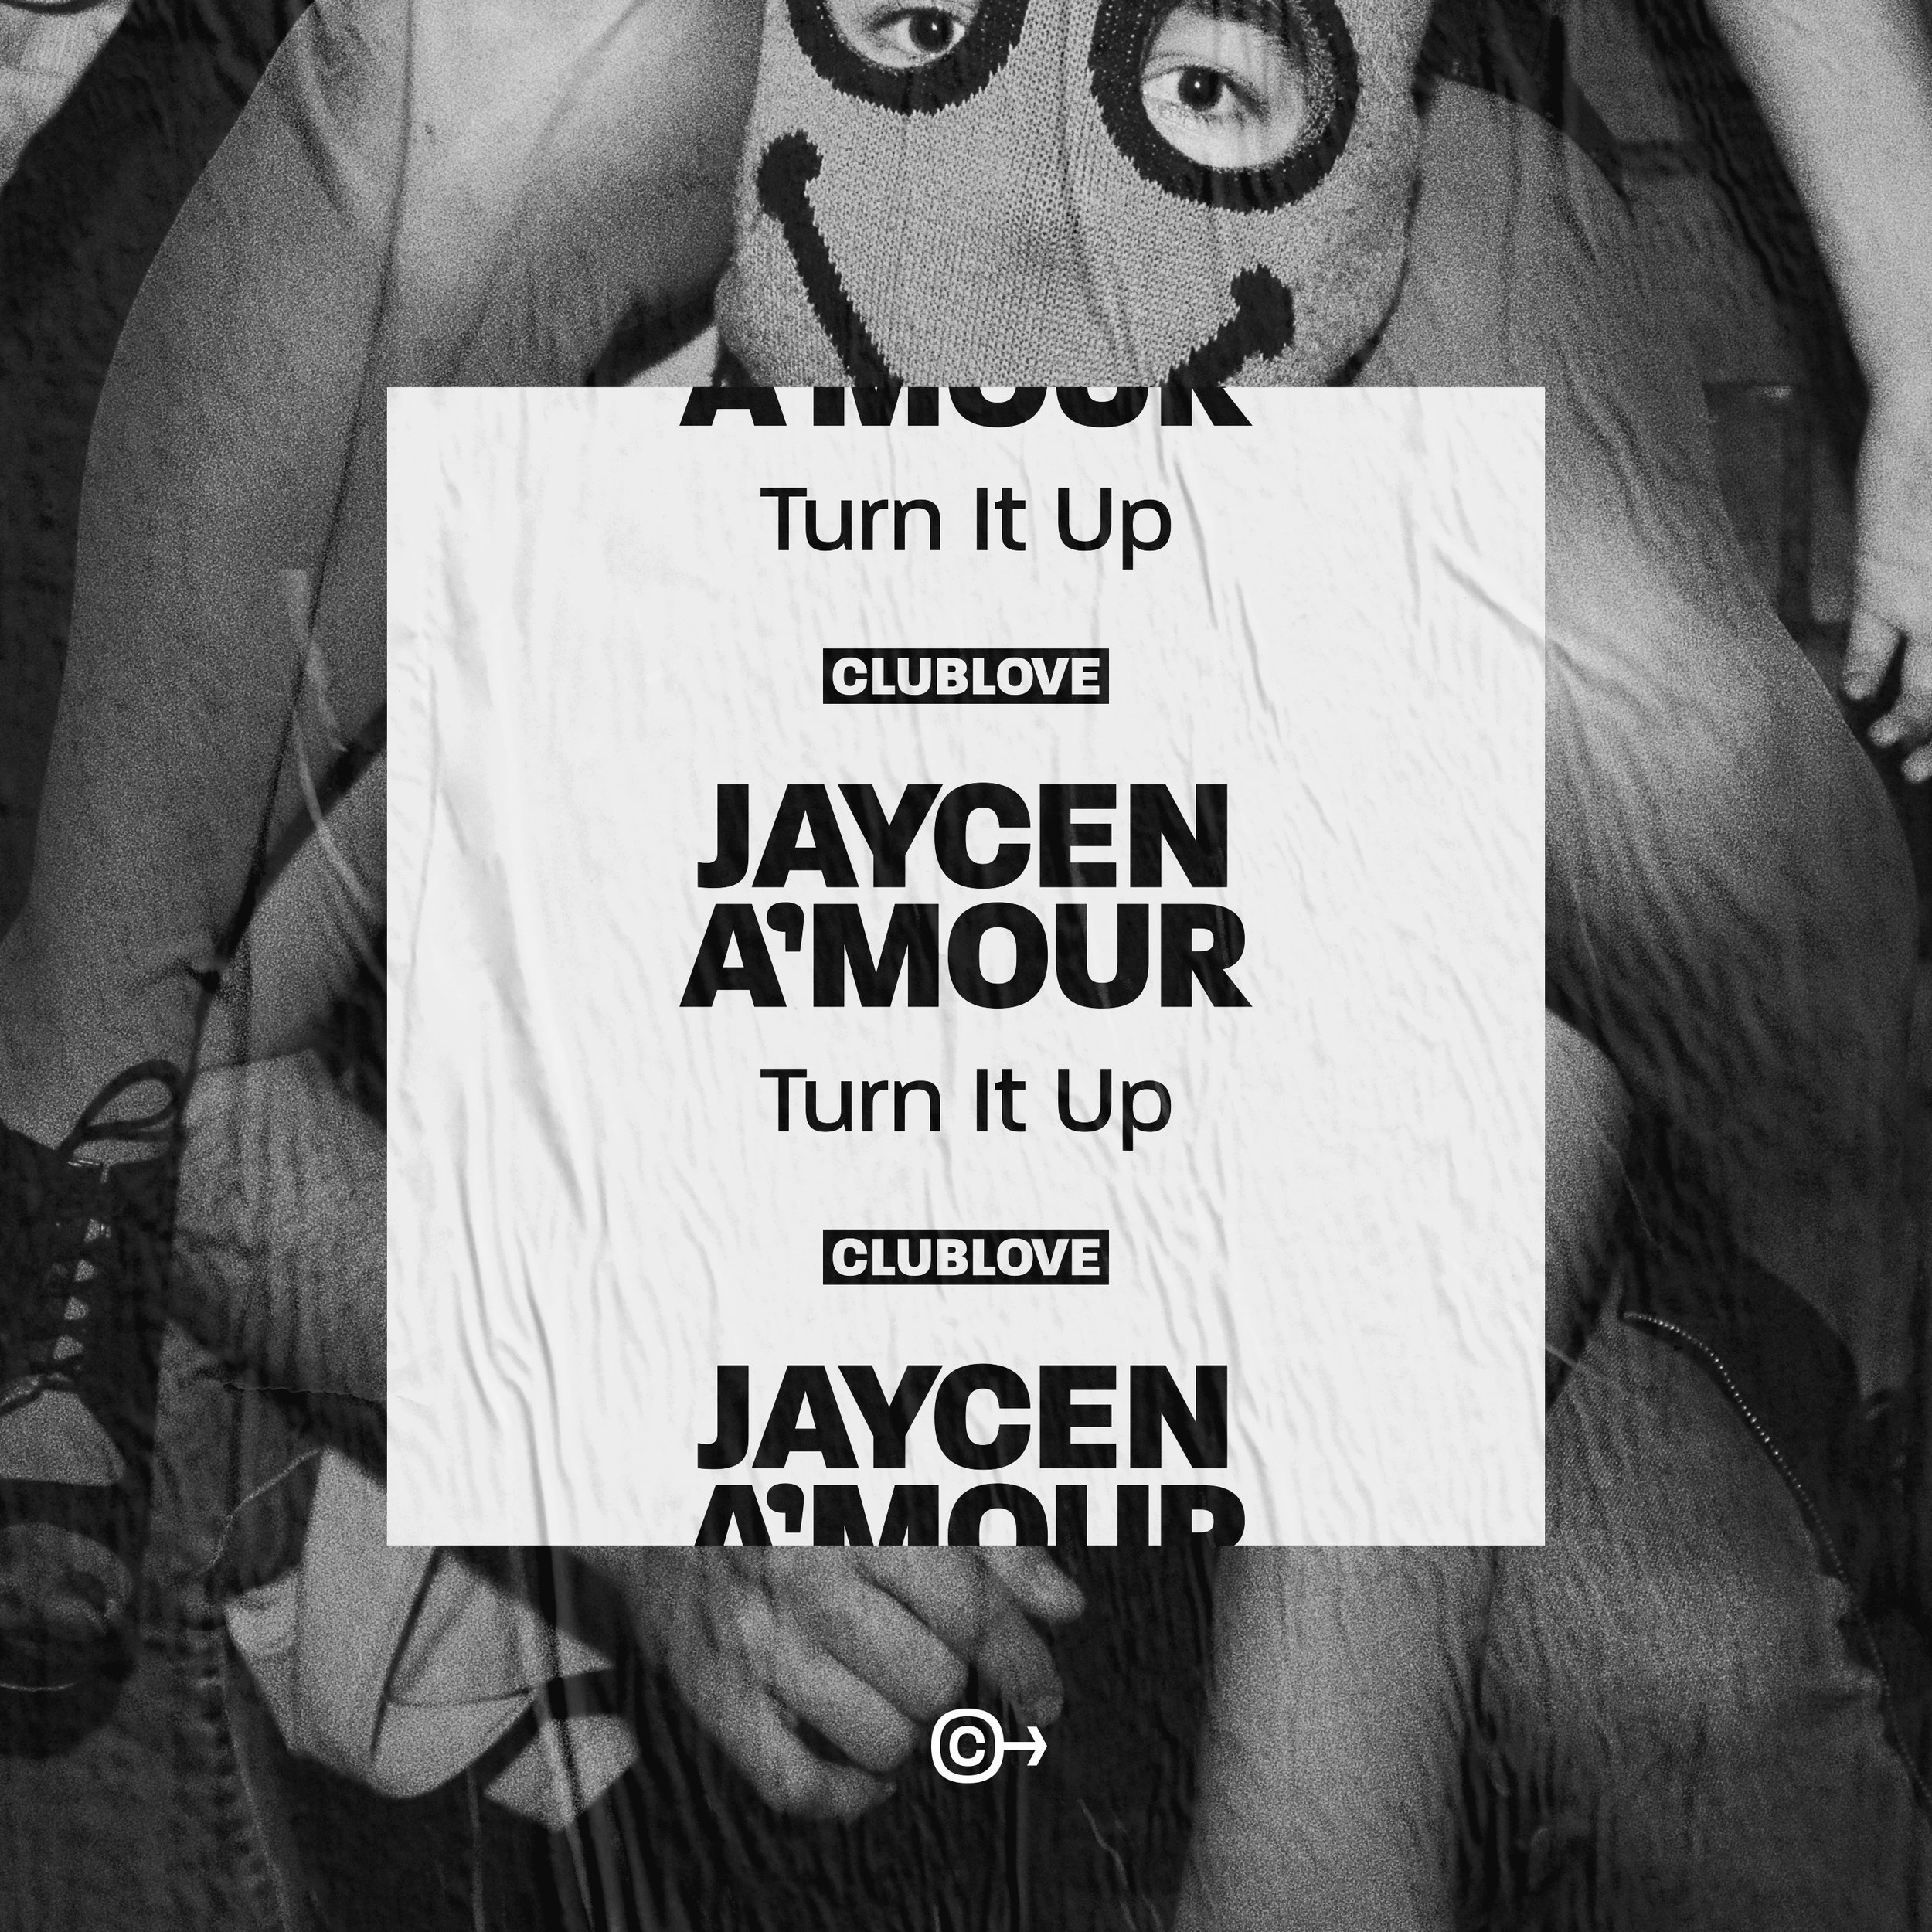 Clublove-Jaycen-Amour-Turn-It-Up-packshot-v1.0 (1).jpg